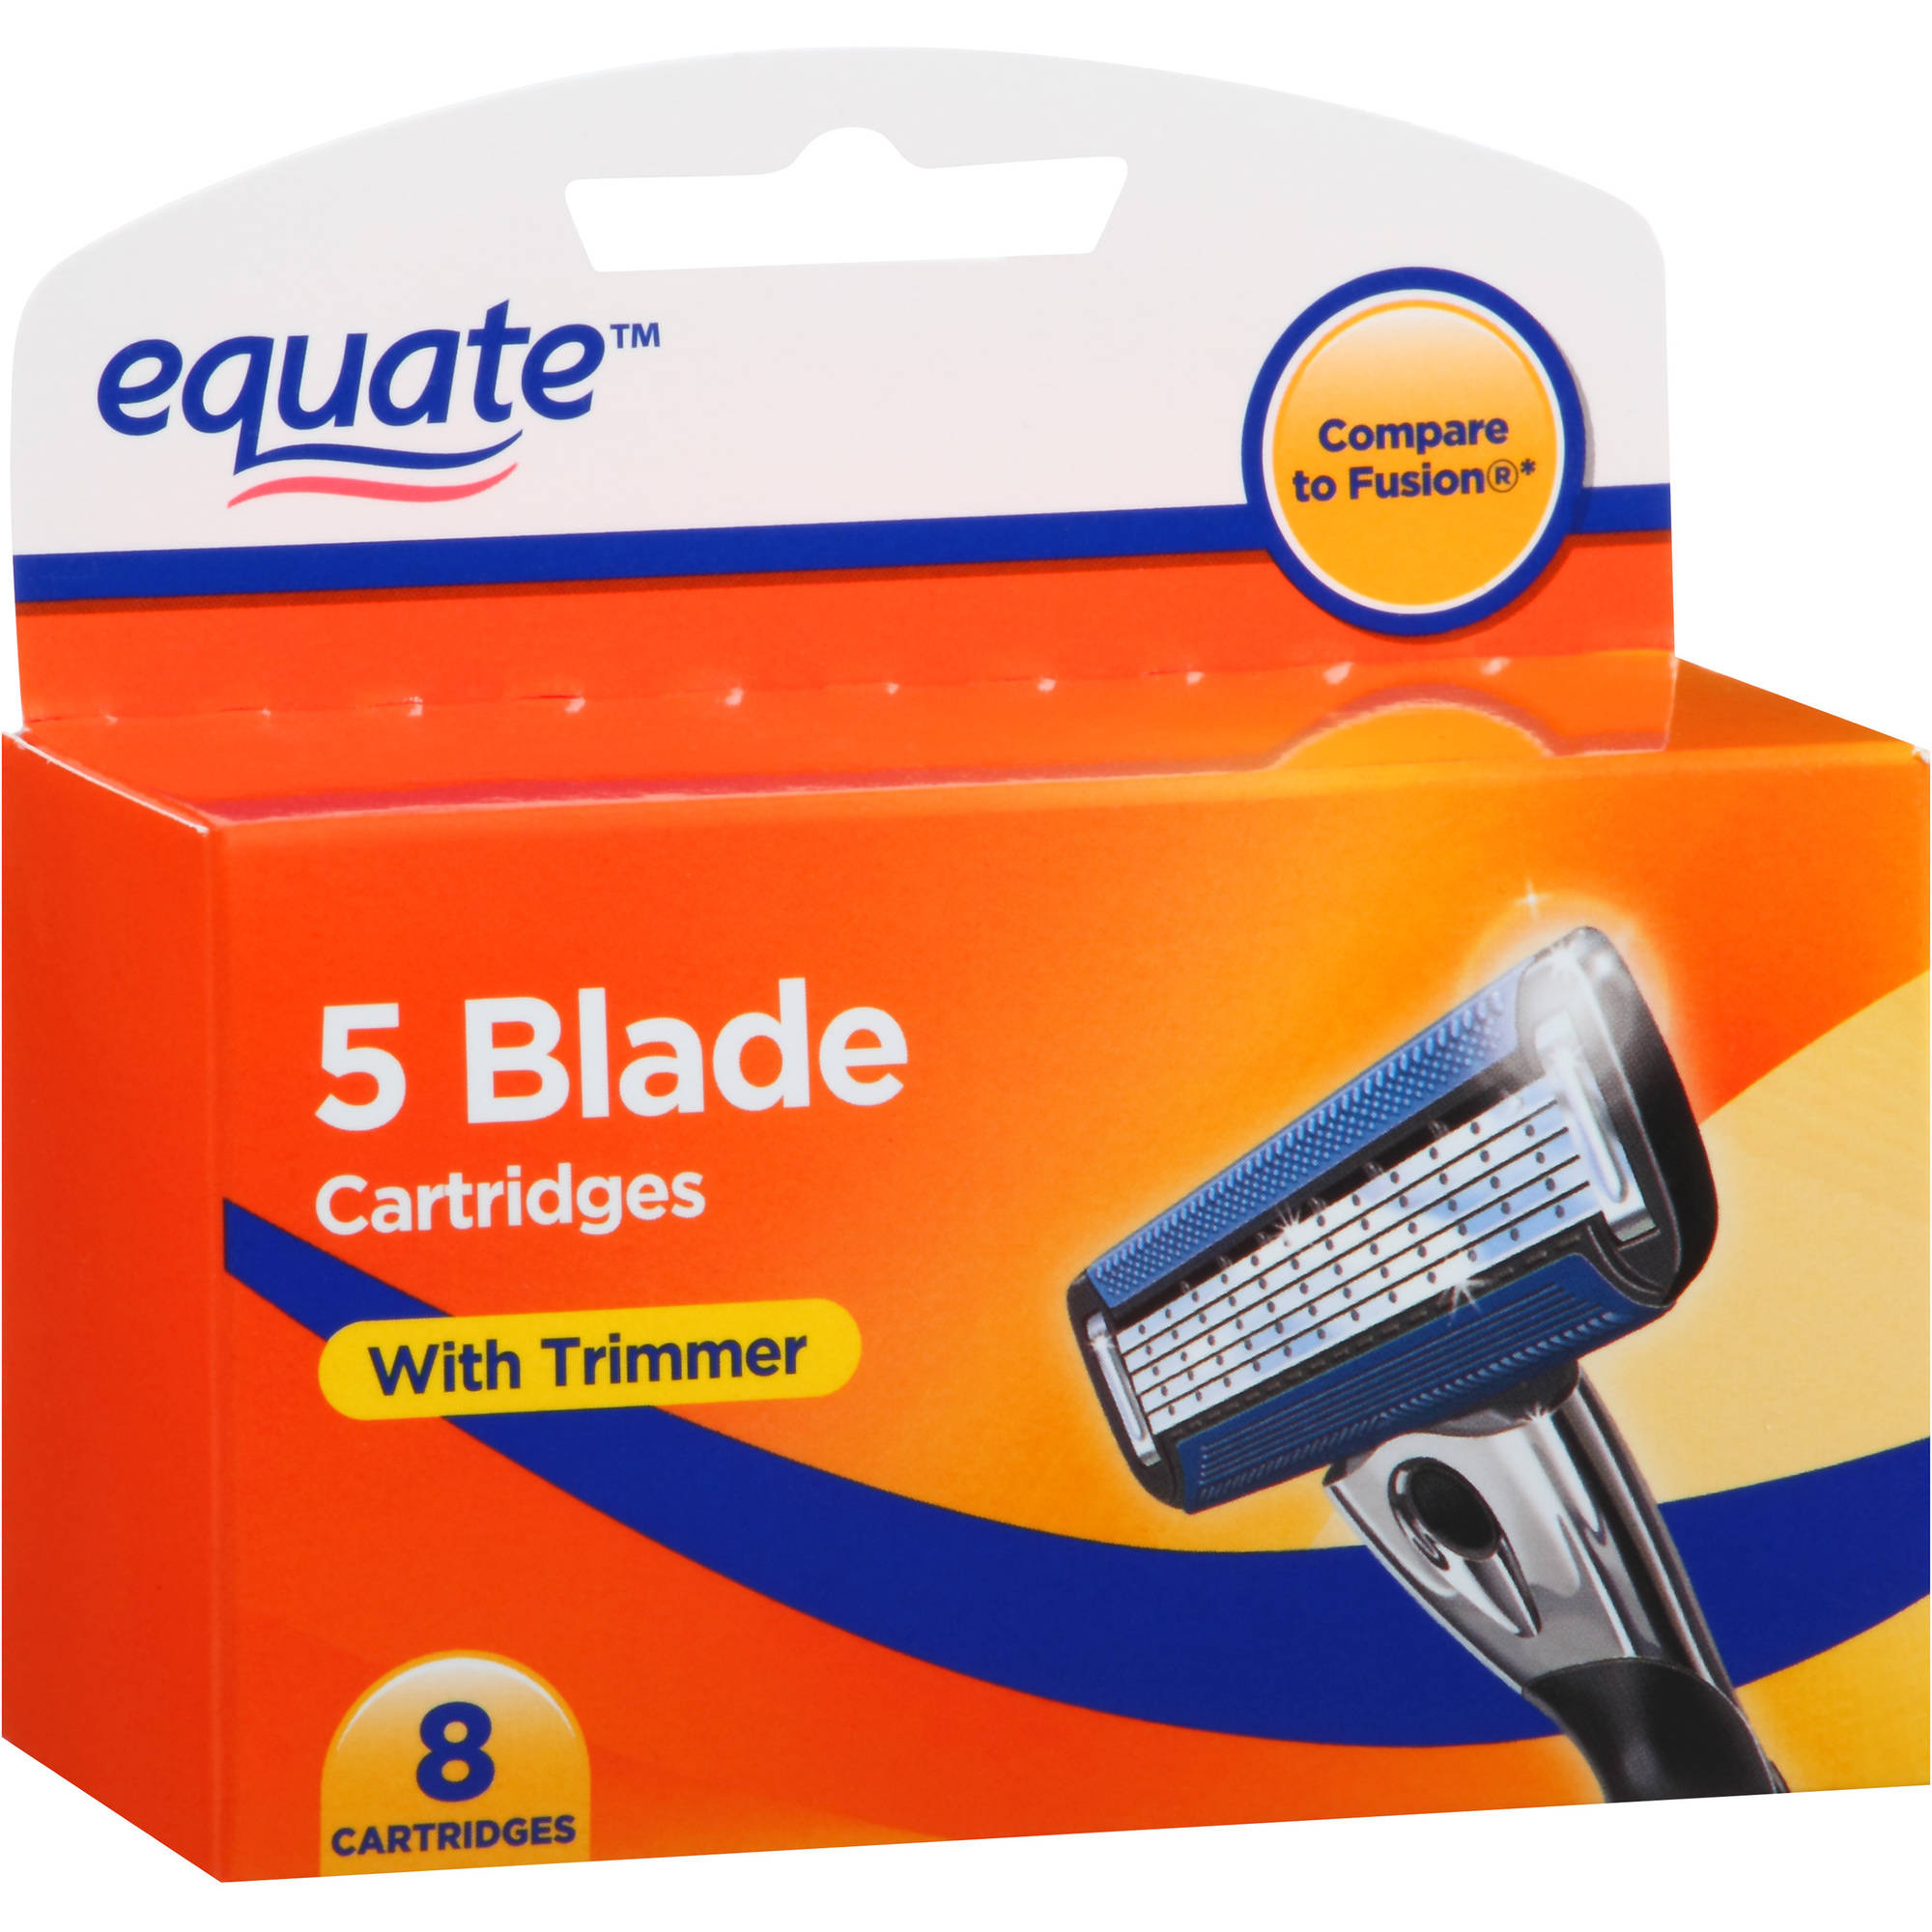 Equate 5 Blade Razor Cartridges with Trimmer for Men, 8 count